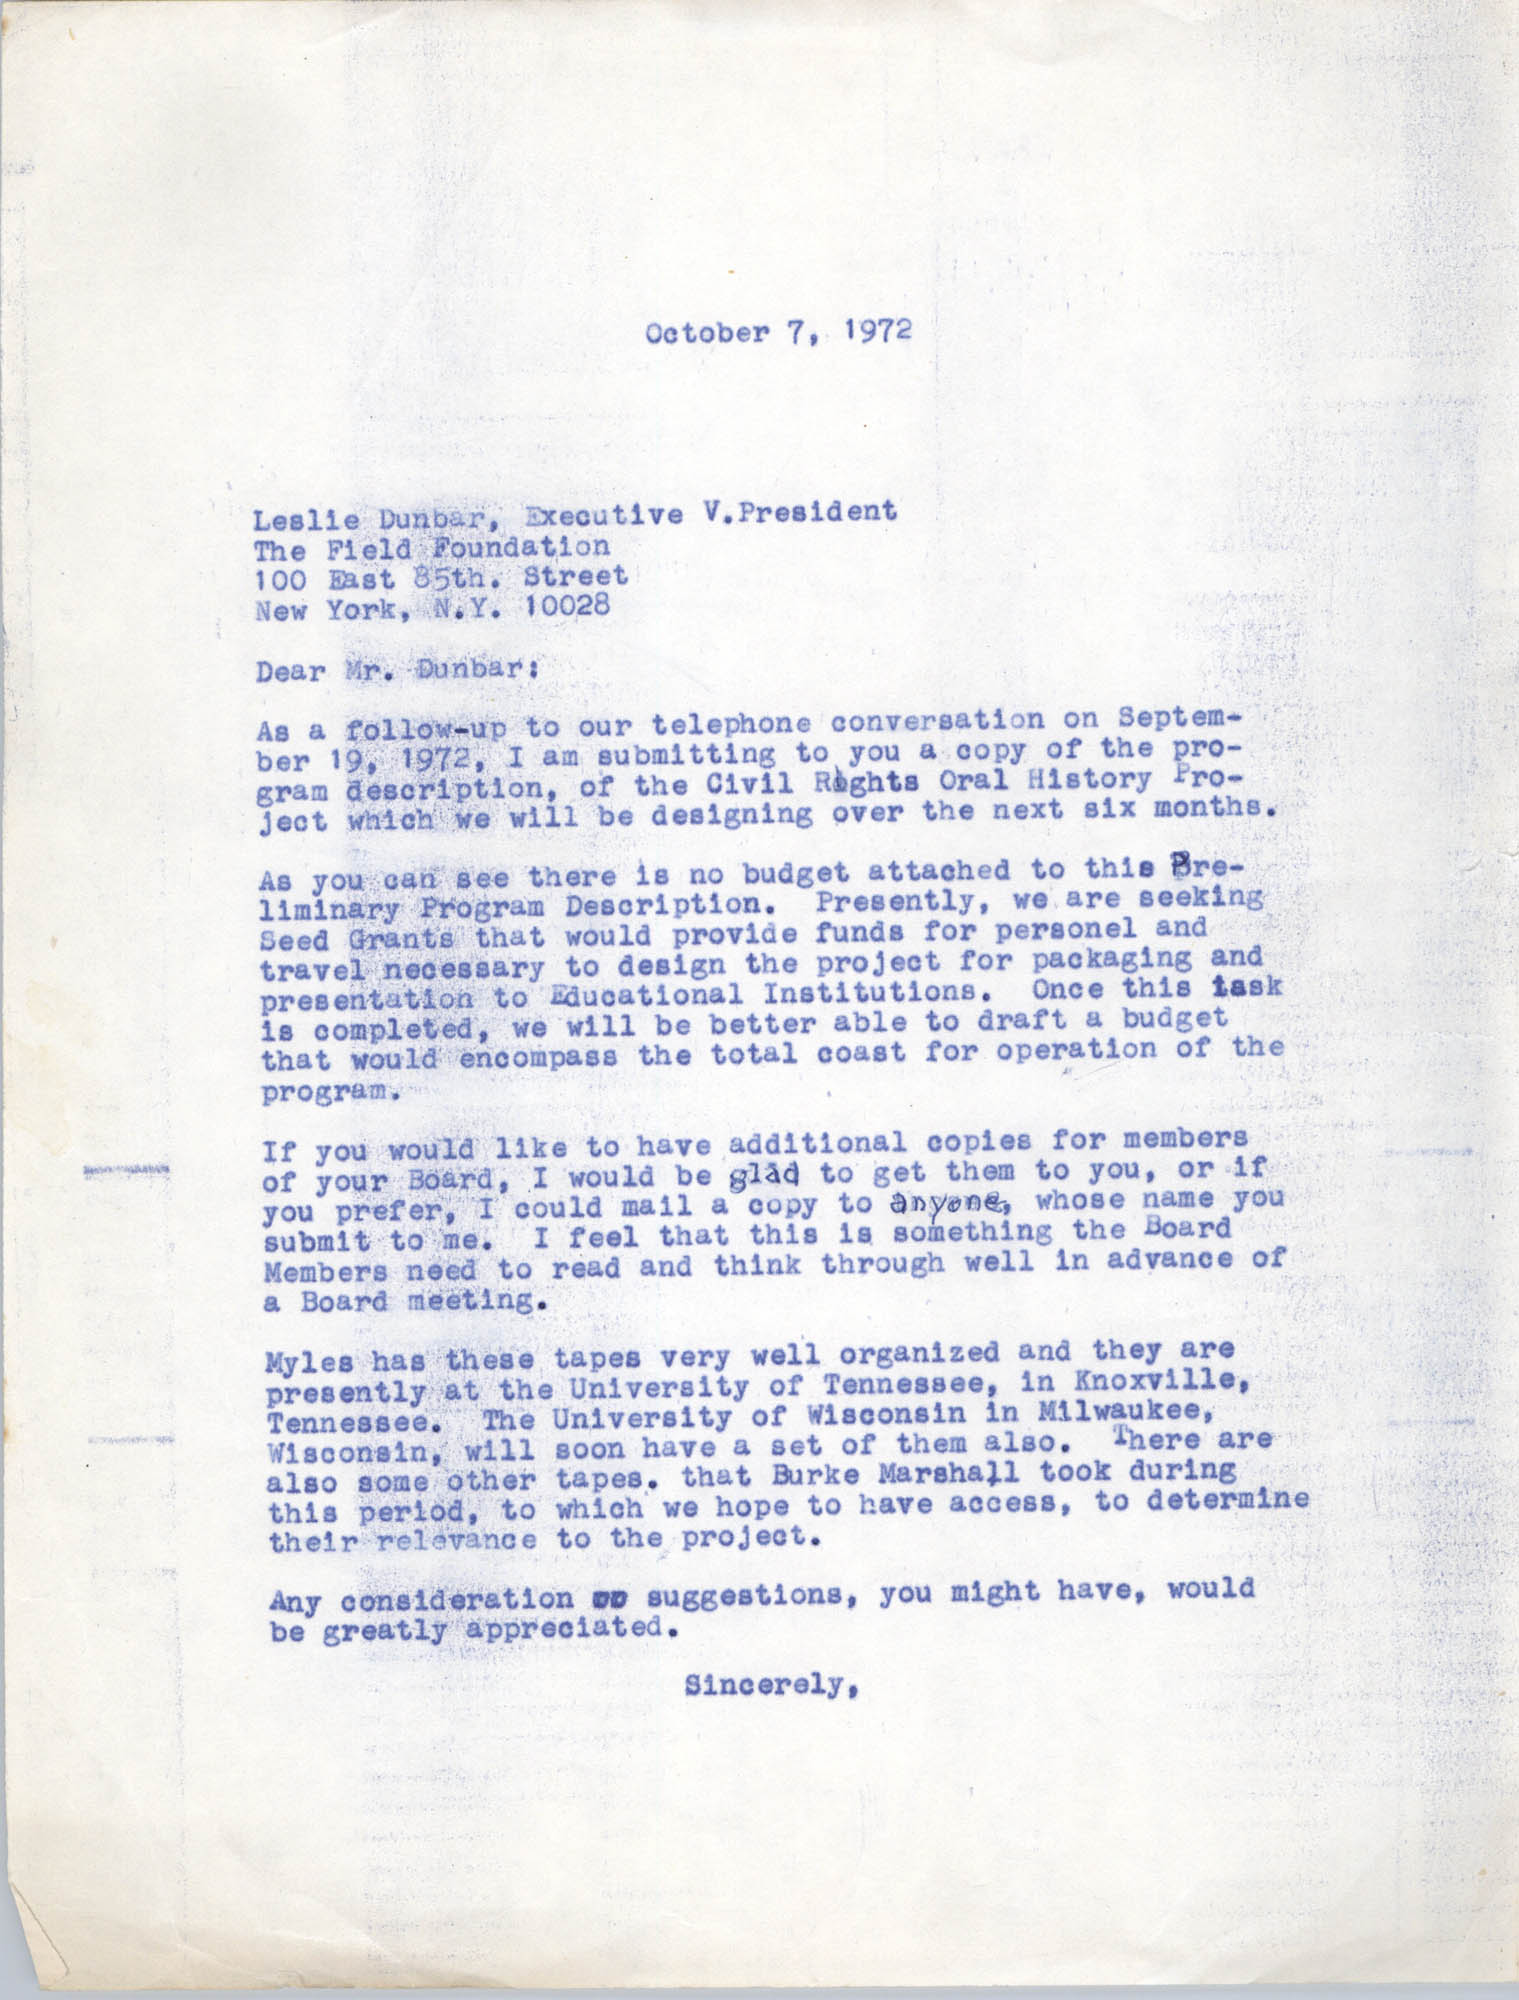 Letter from Bernice Robinson to Leslie Dunbar, October 7, 1972